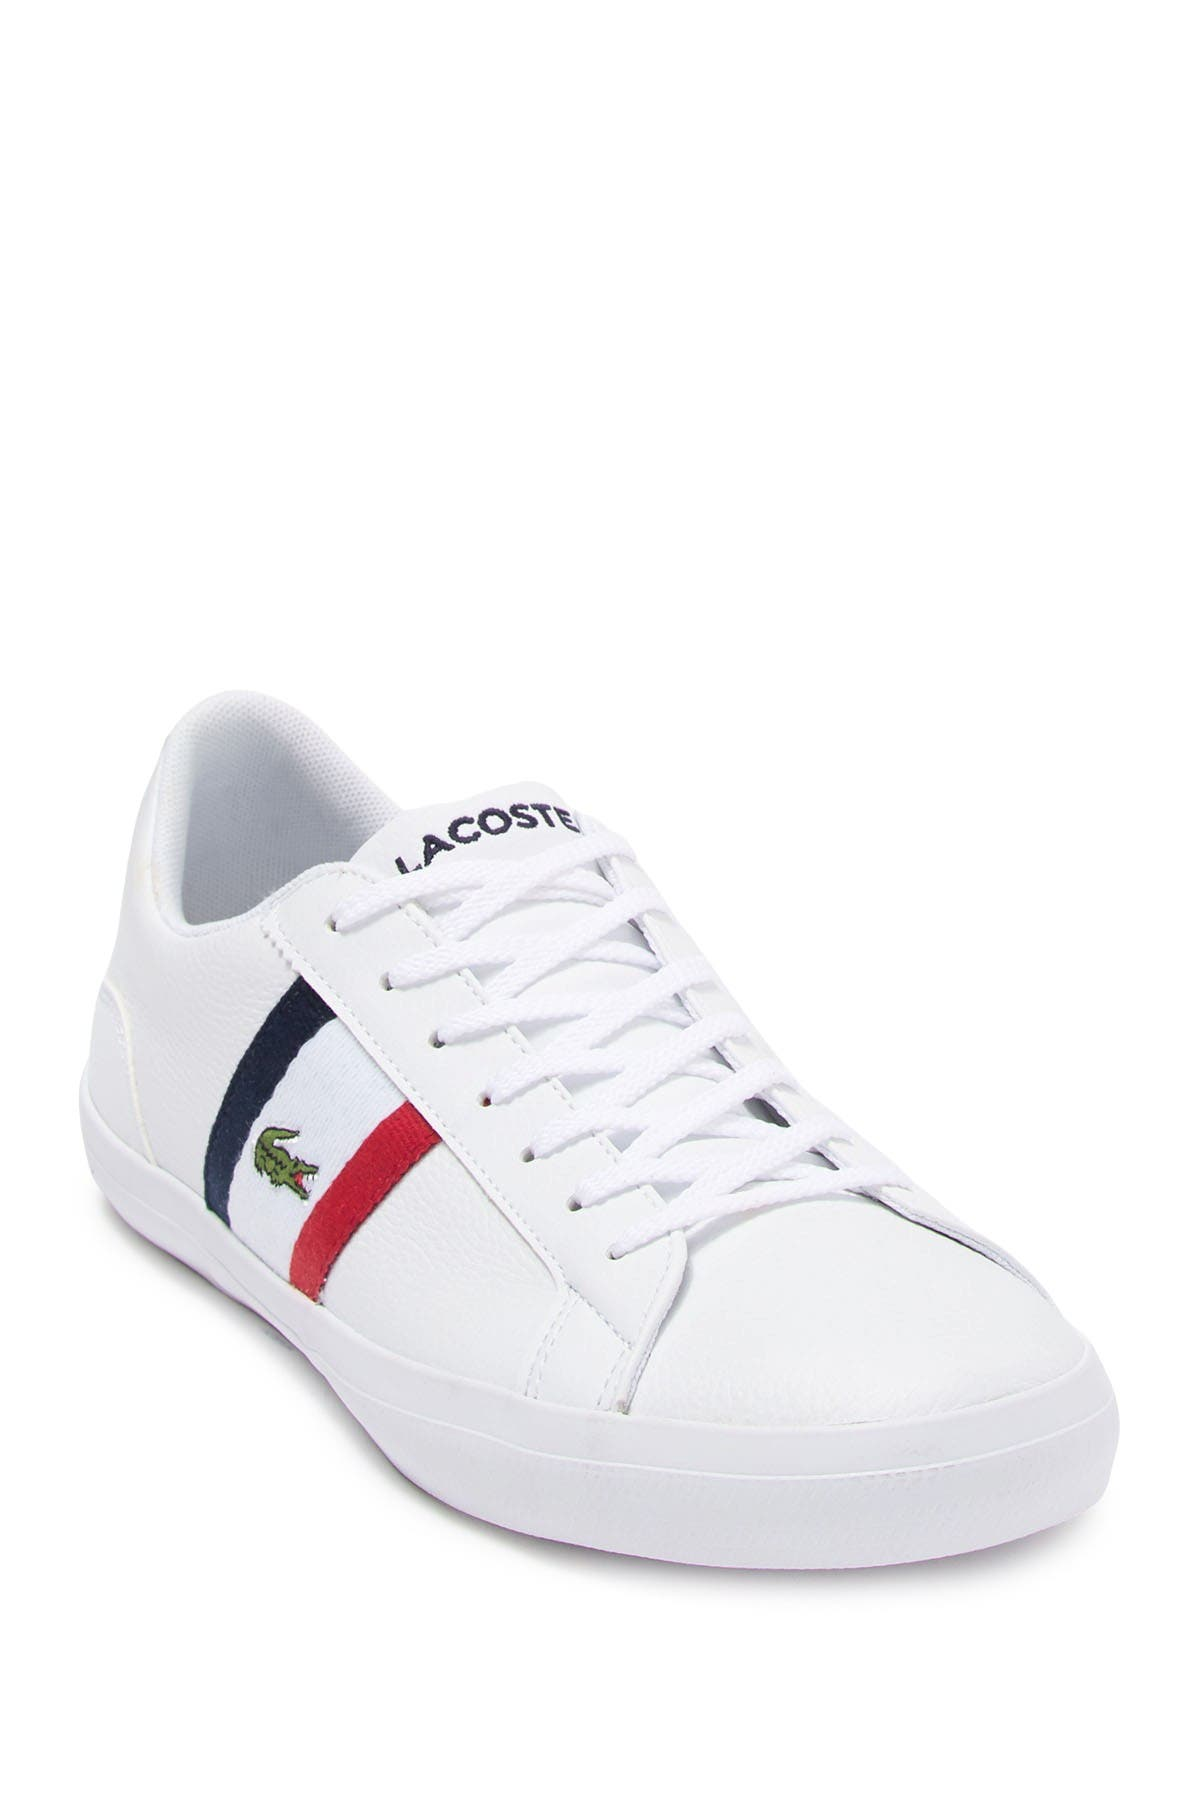 nordstrom rack lacoste shoes